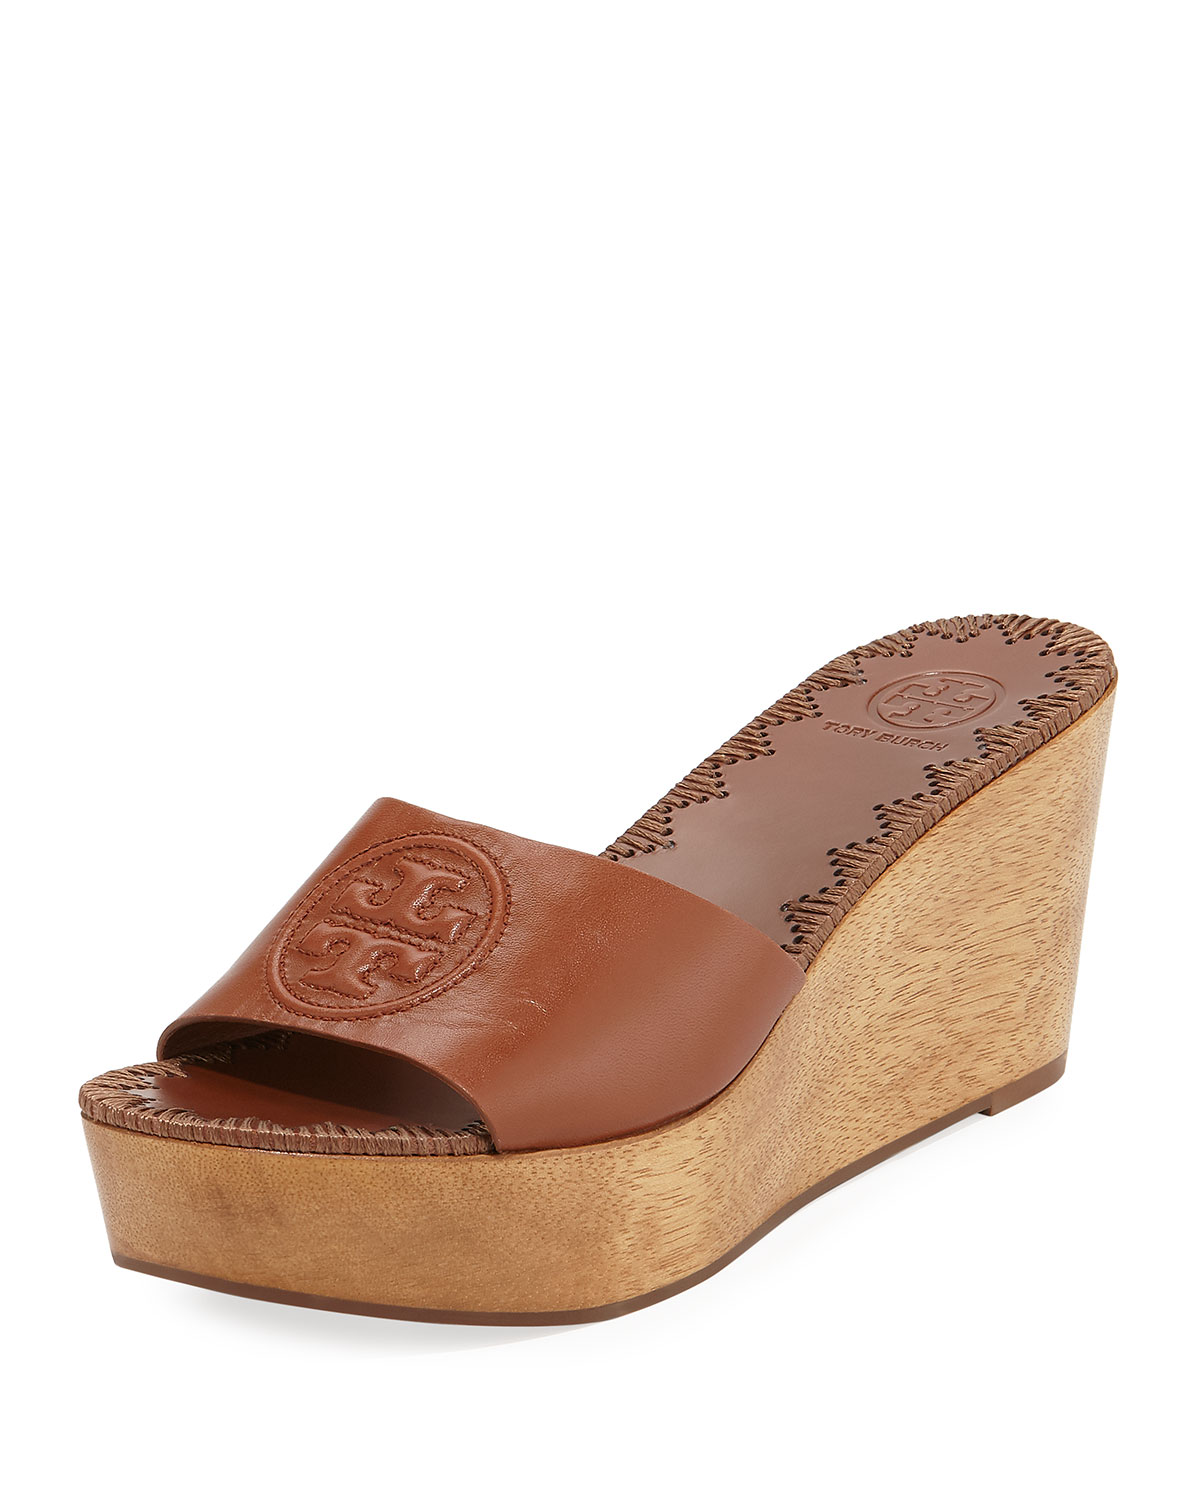 2efa0240de6cb1 Tory Burch Patty Platform Wedge Slide Sandal